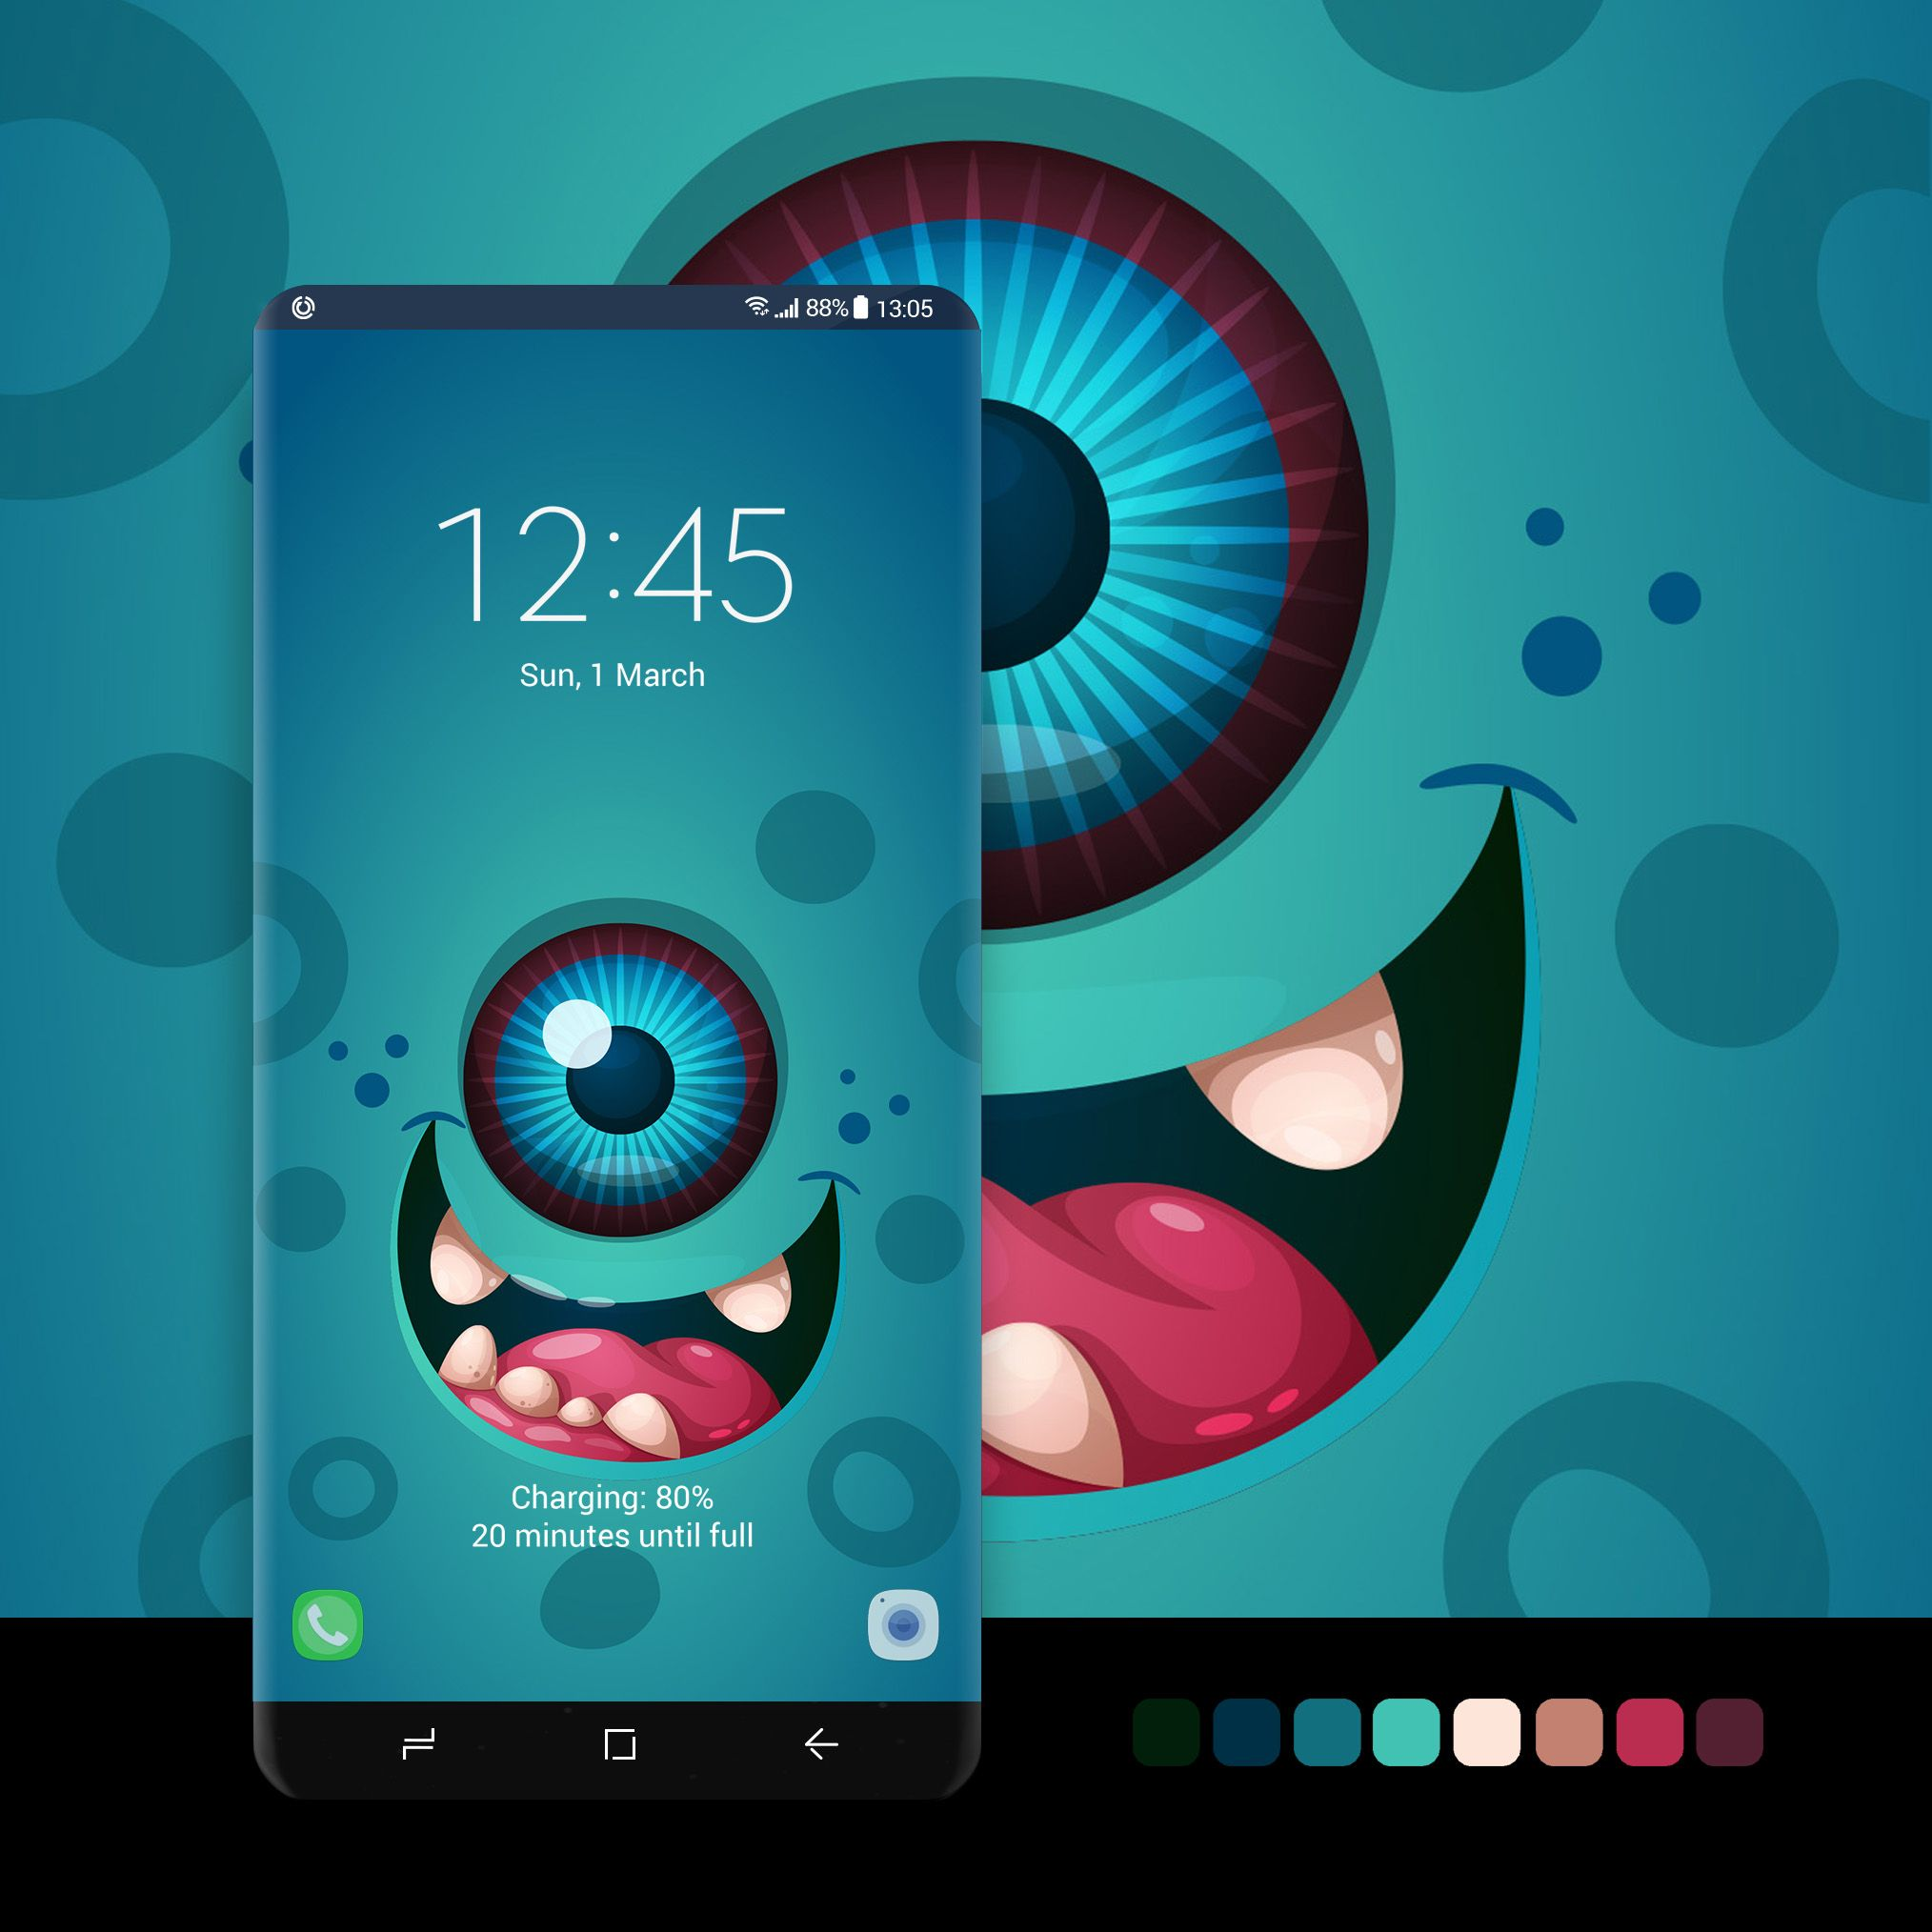 New Smartphone Wallpaper: One-eyed Monster Wallpaper #wallpaper, #android, #phone